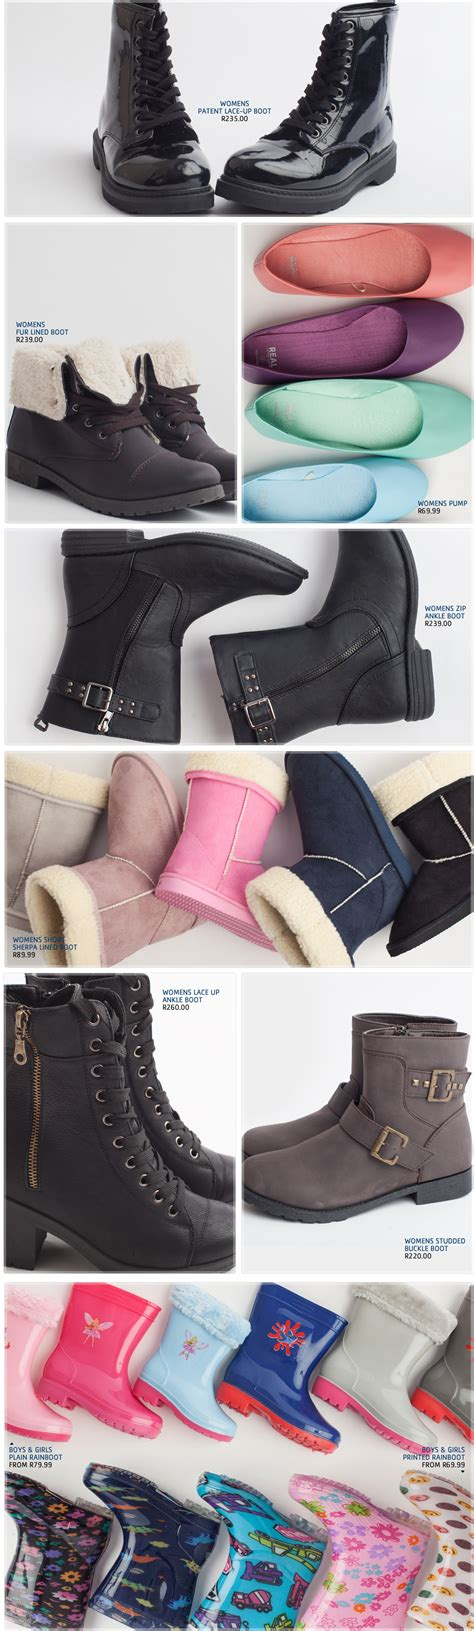 Winter Shoes Most Fabulous Picks by N Pay Clothing Style File Knitwear N Pay